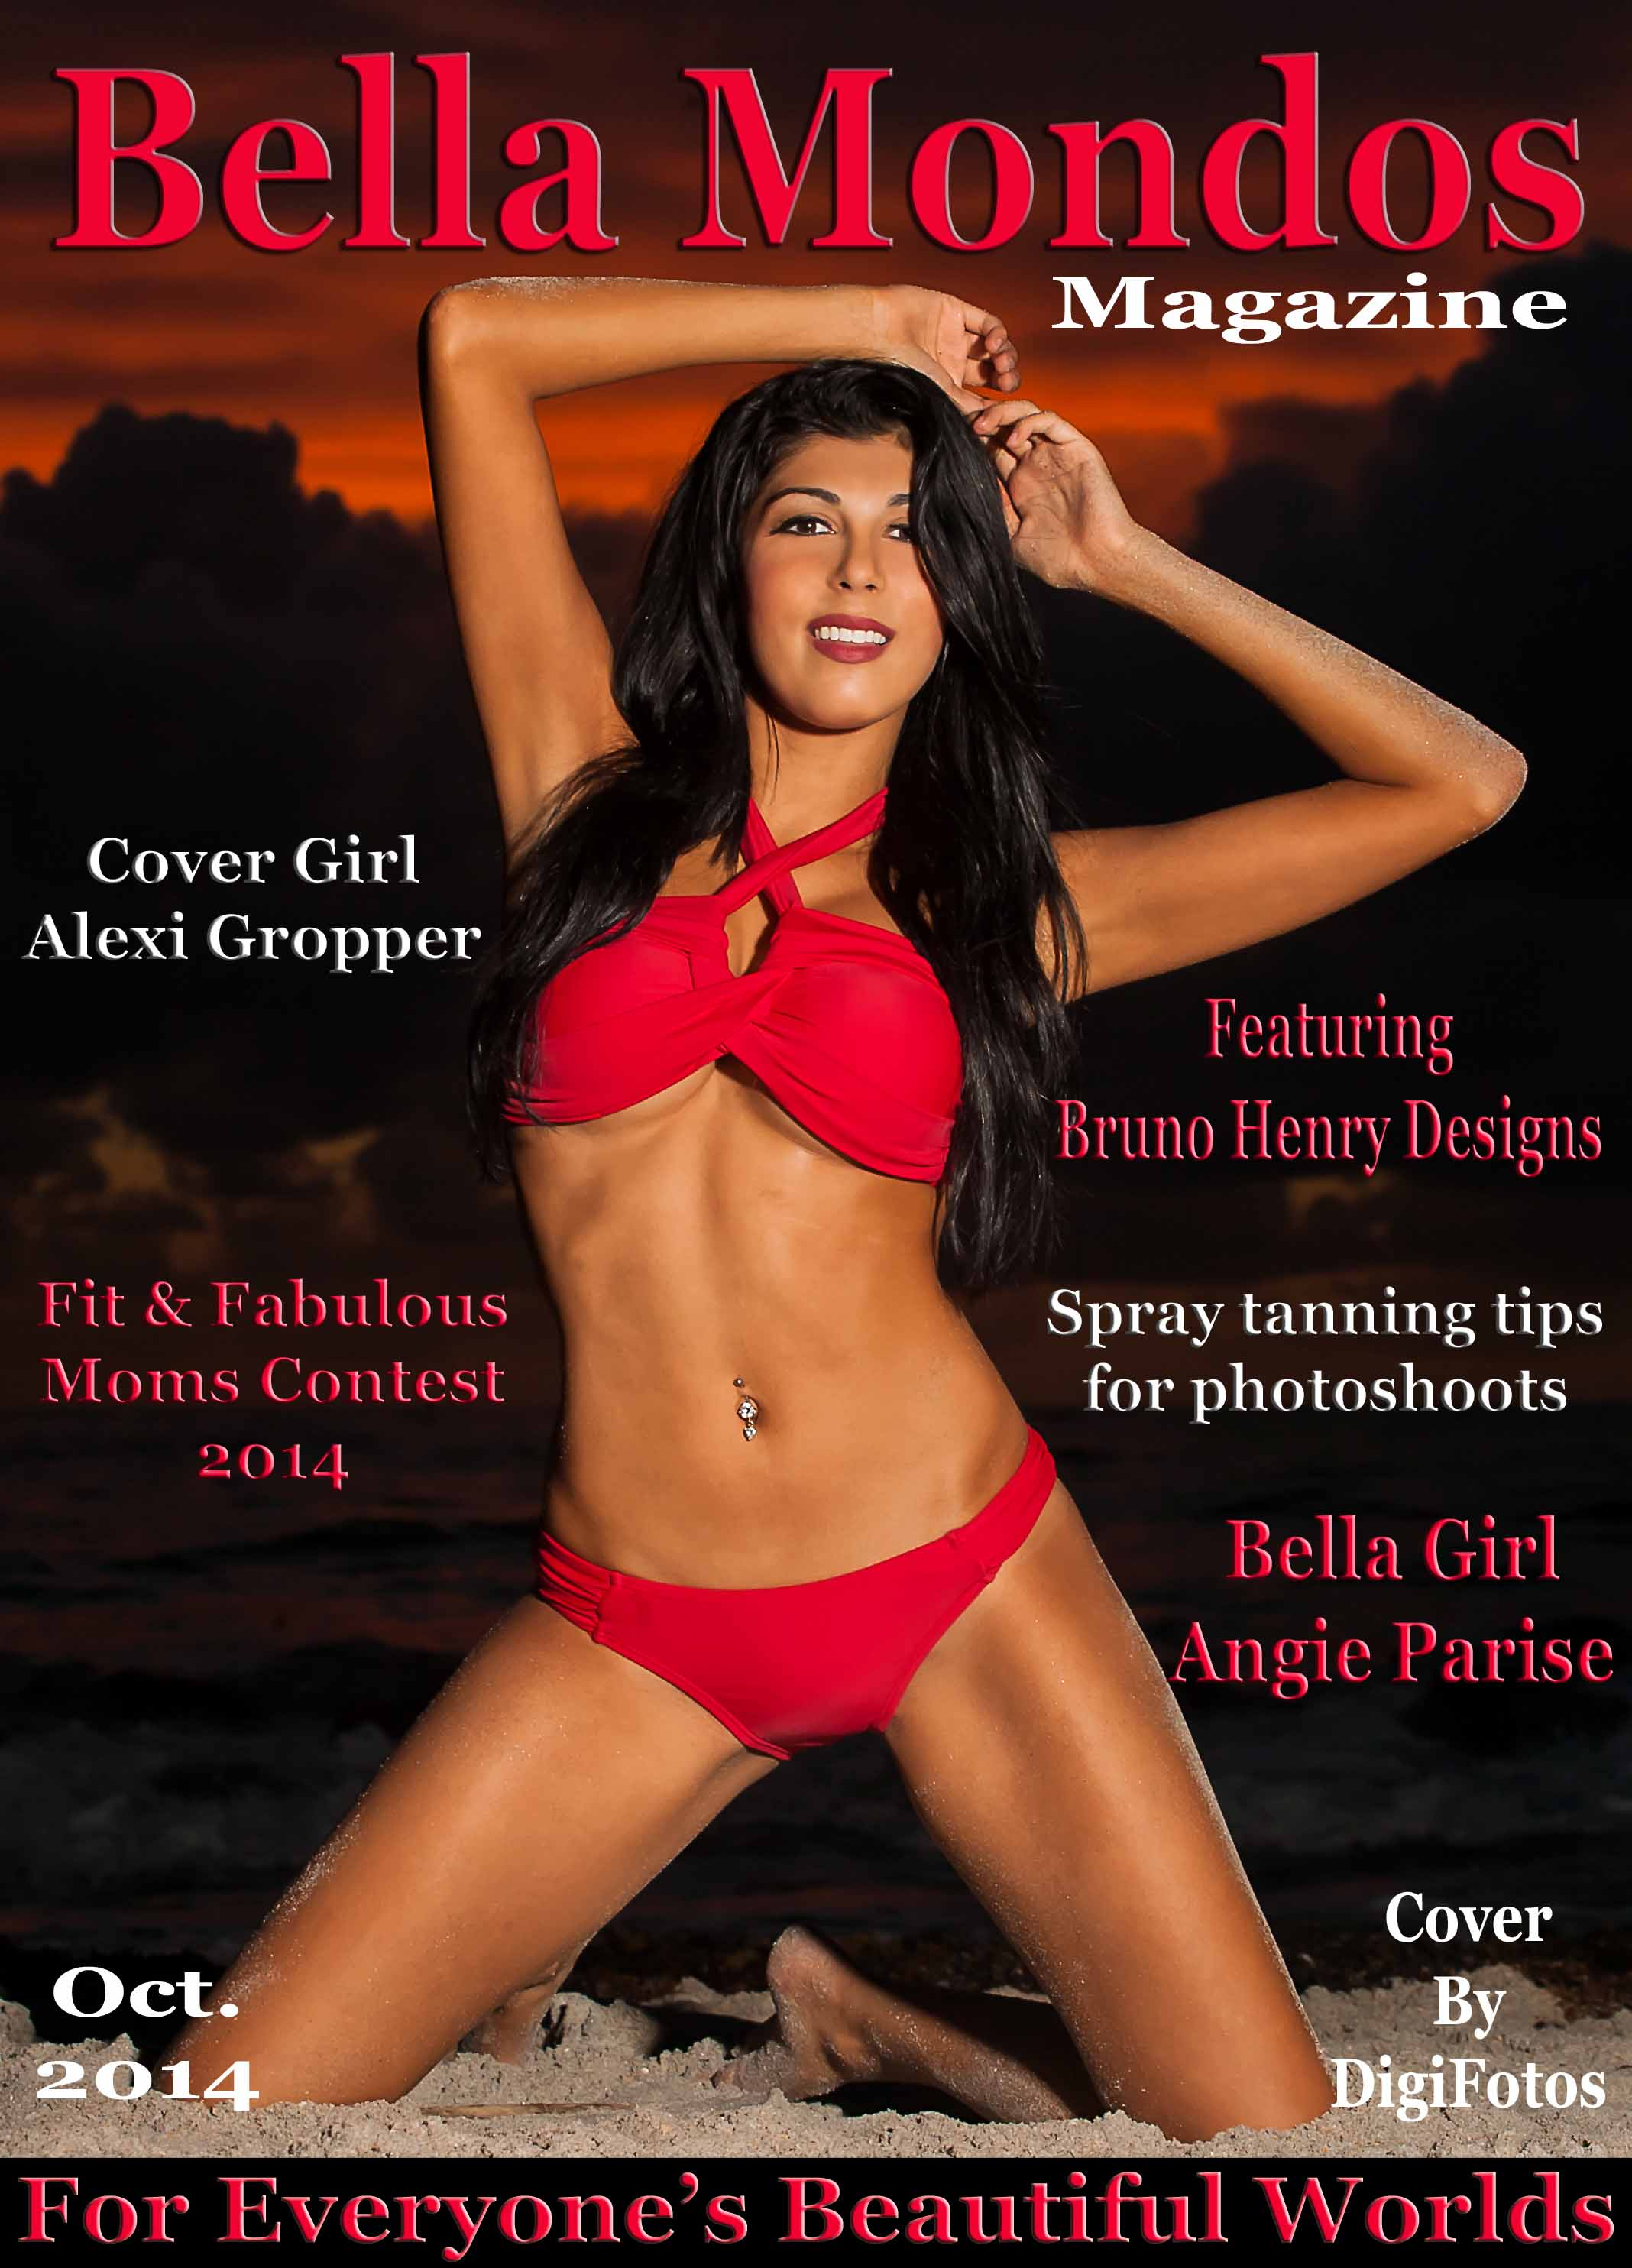 http://www.digifotosphotography.com/covers/cover_oct14.jpg